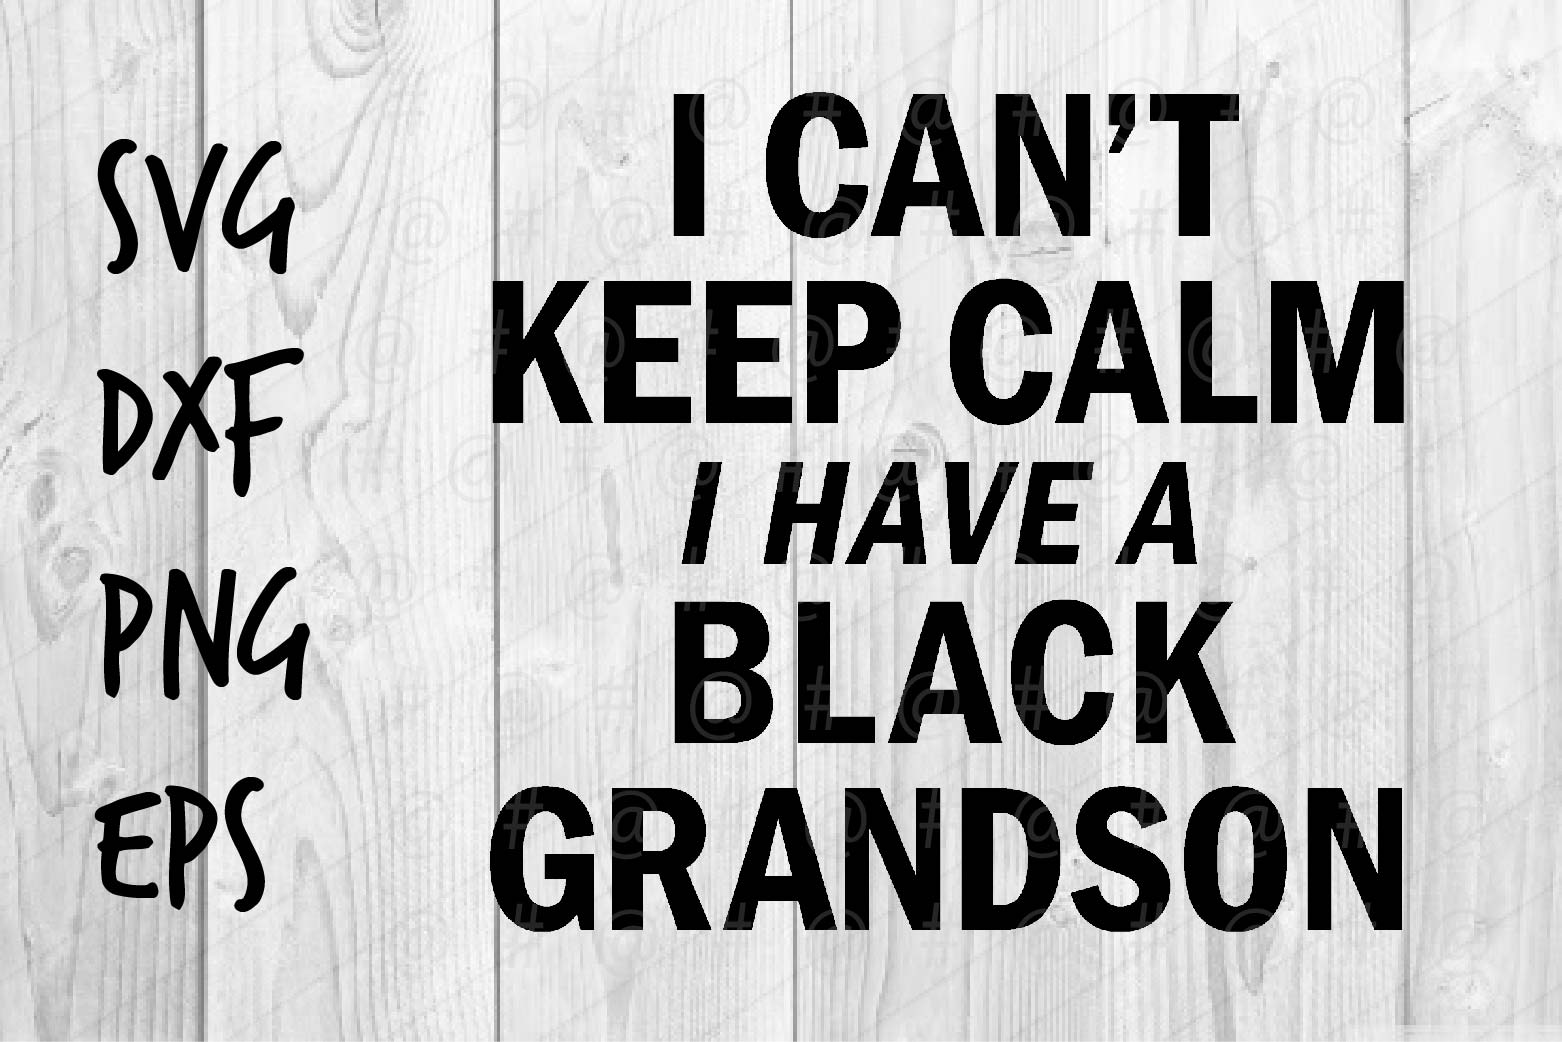 Download Free I Have Black Grandson Graphic By Spoonyprint Creative Fabrica for Cricut Explore, Silhouette and other cutting machines.